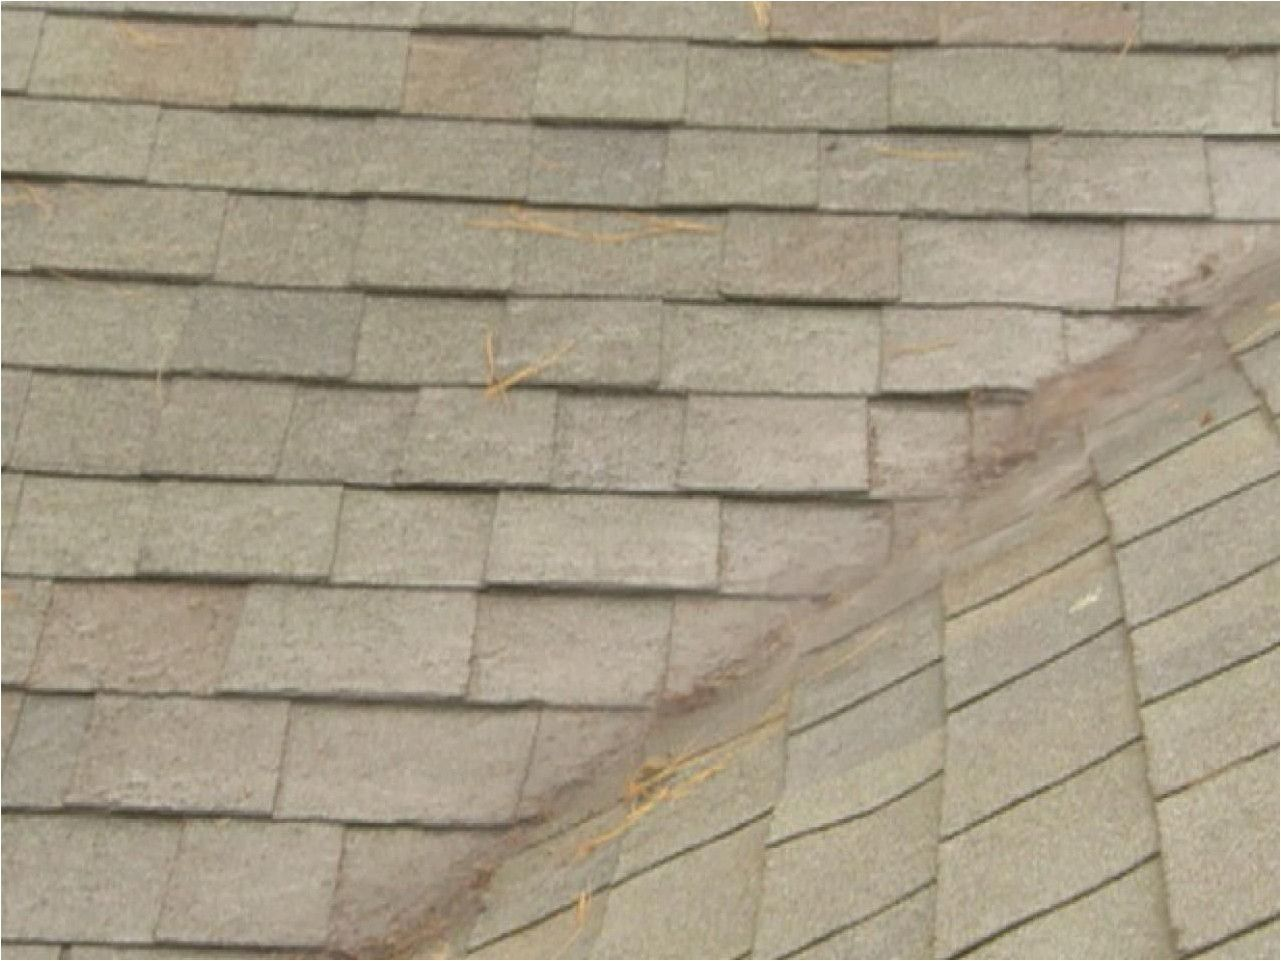 Guide On How To Repair Your Roof Roofing Design Guide Roof Repair Diy Leaking Roof Roof Repair